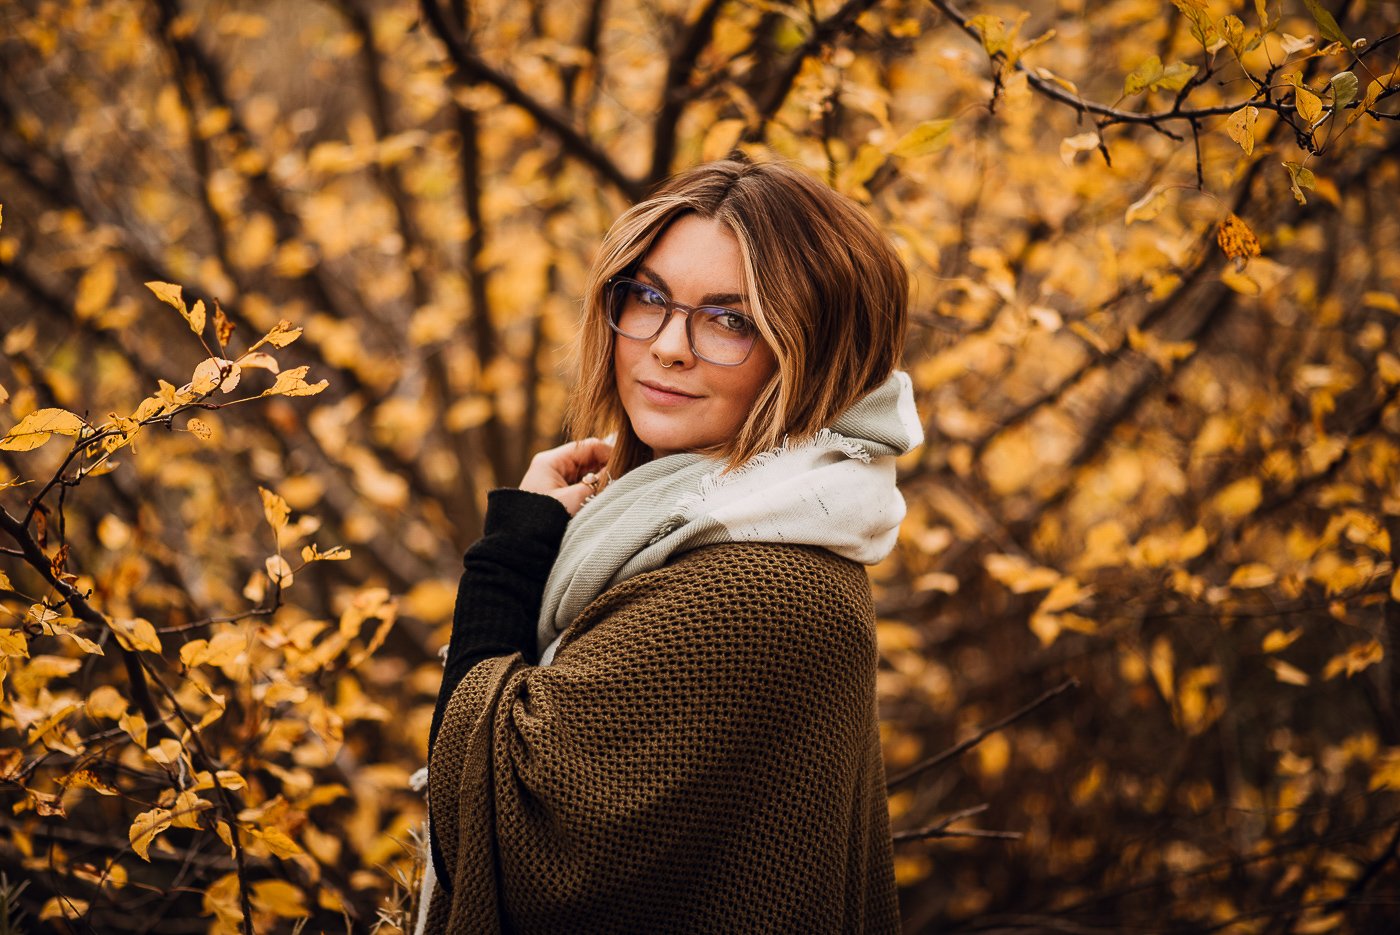 PHOCO Best of 2018 Photograph Fort Collins-47 Portrait Yellow Leaves fall scarf glasses Shaye Fitzgerald.jpg